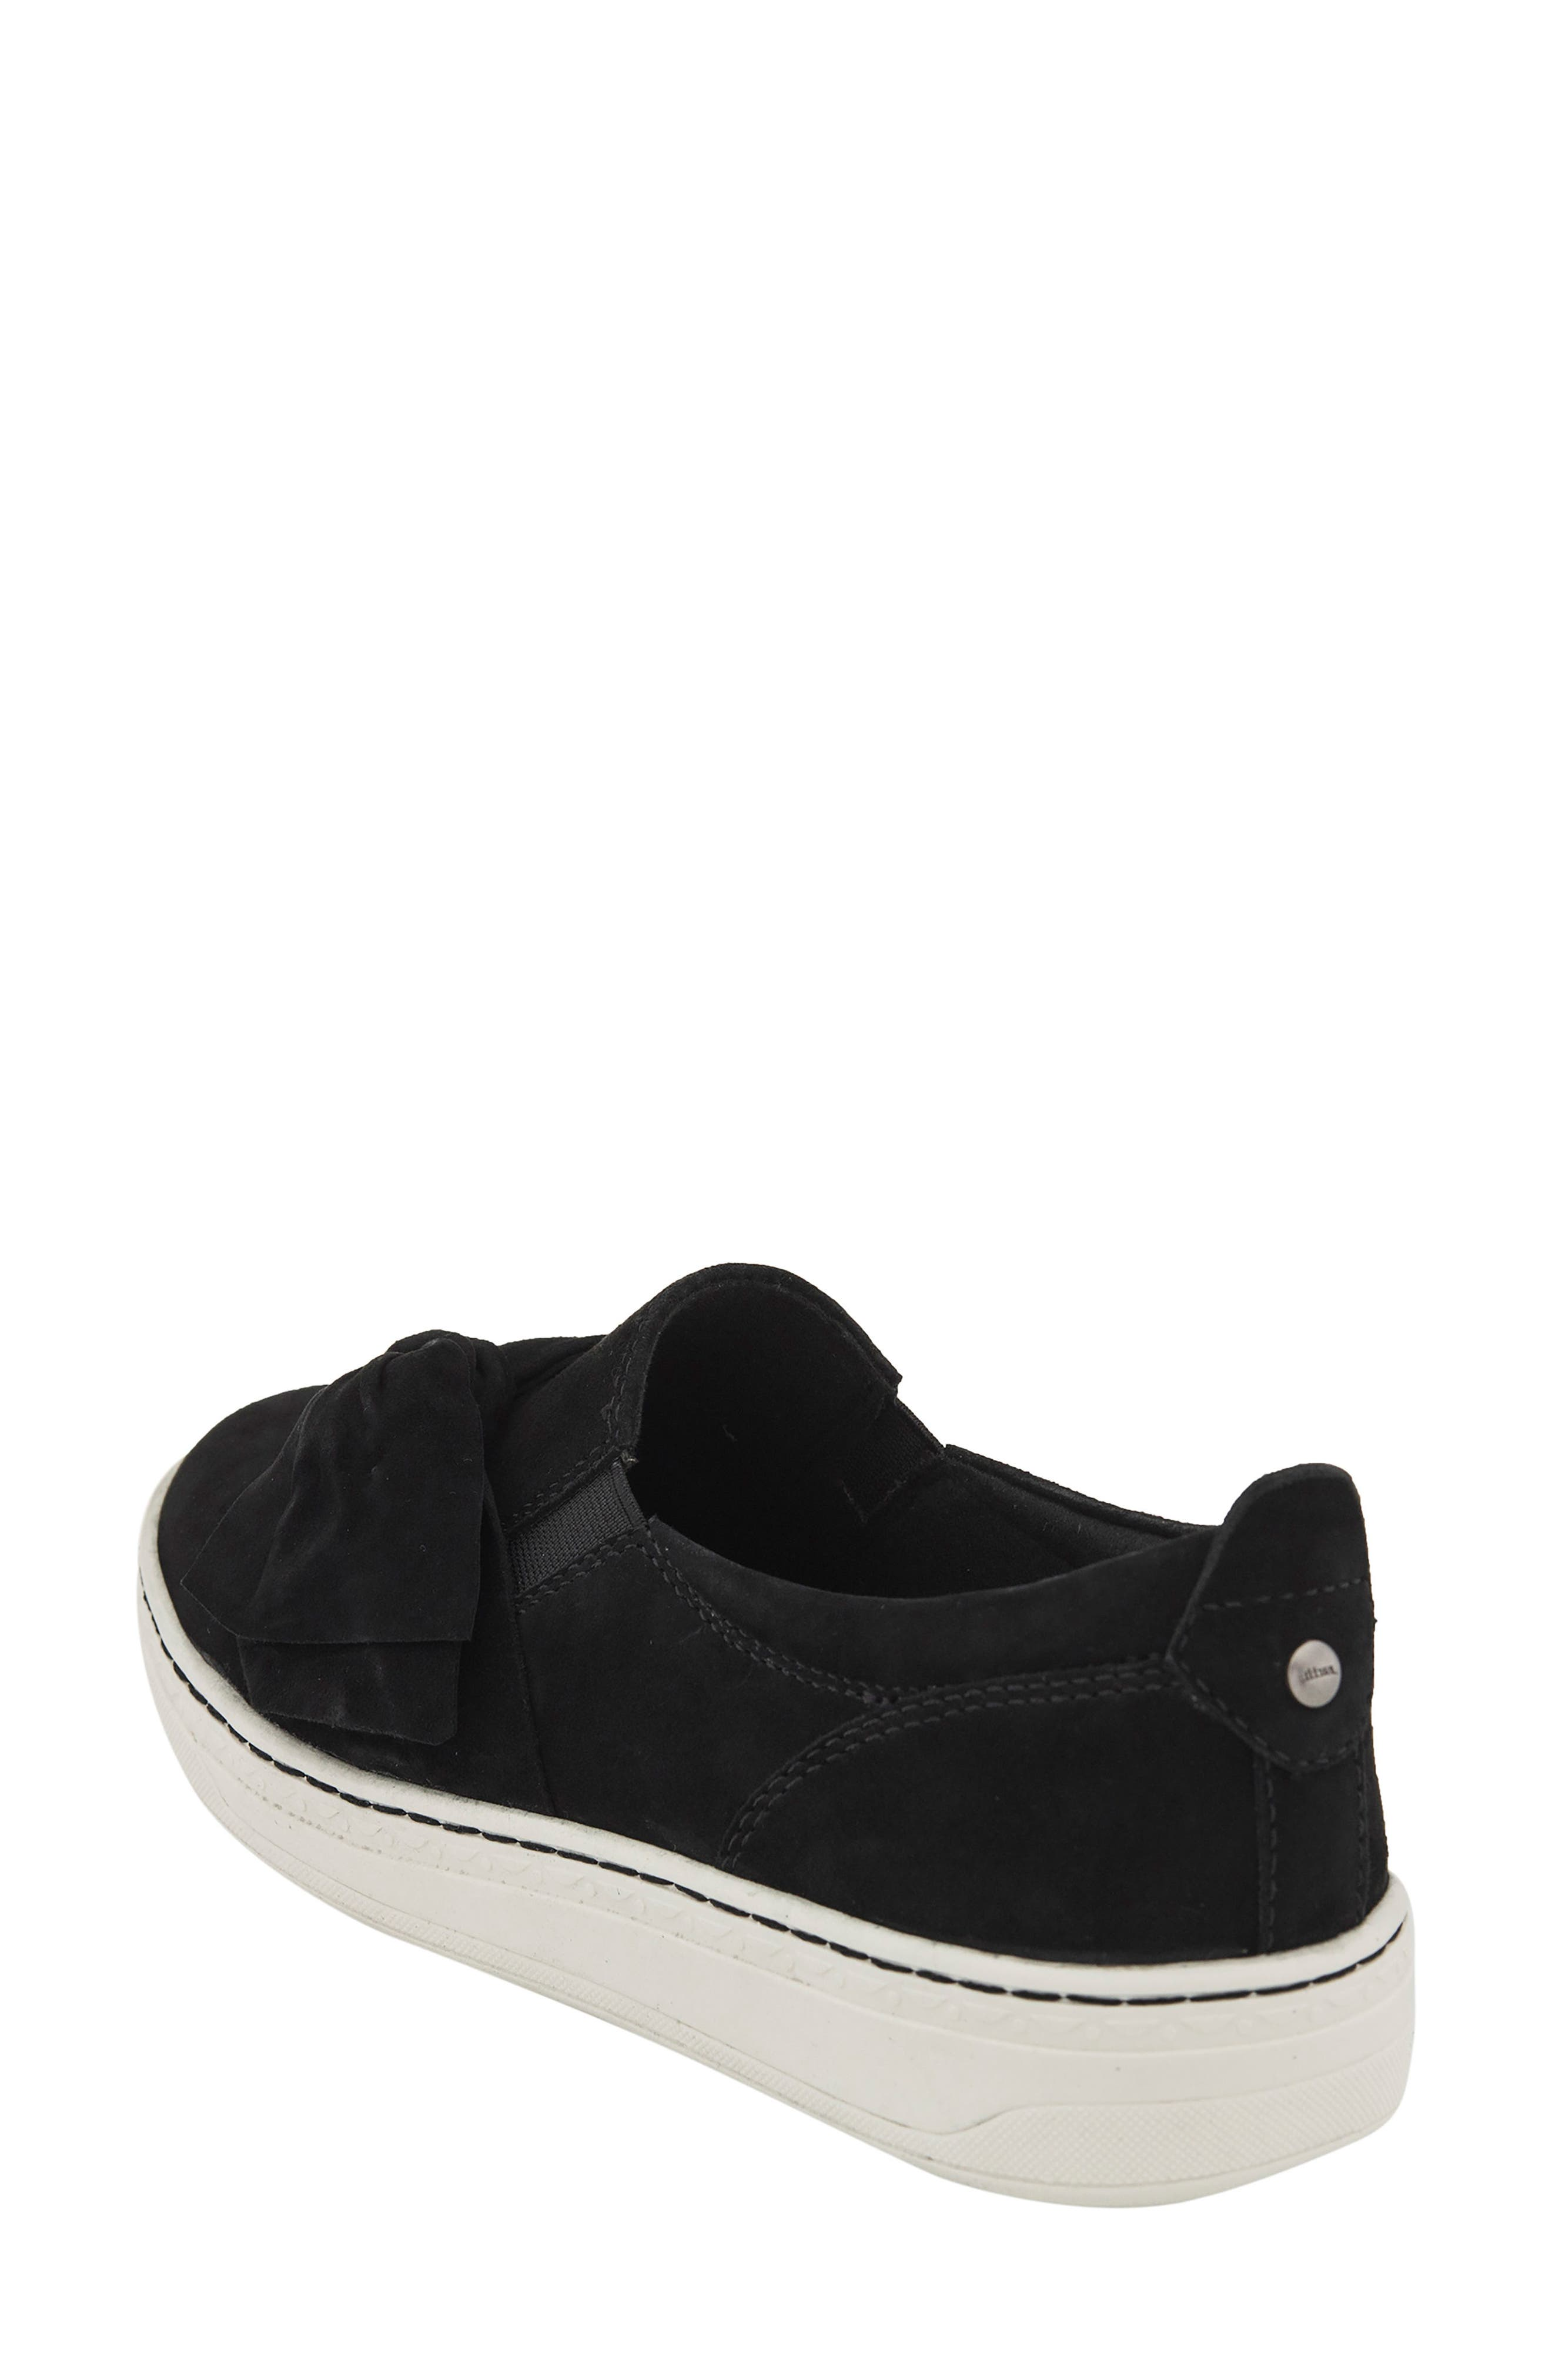 Zoey Slip-On,                             Alternate thumbnail 2, color,                             Black Suede Fabric